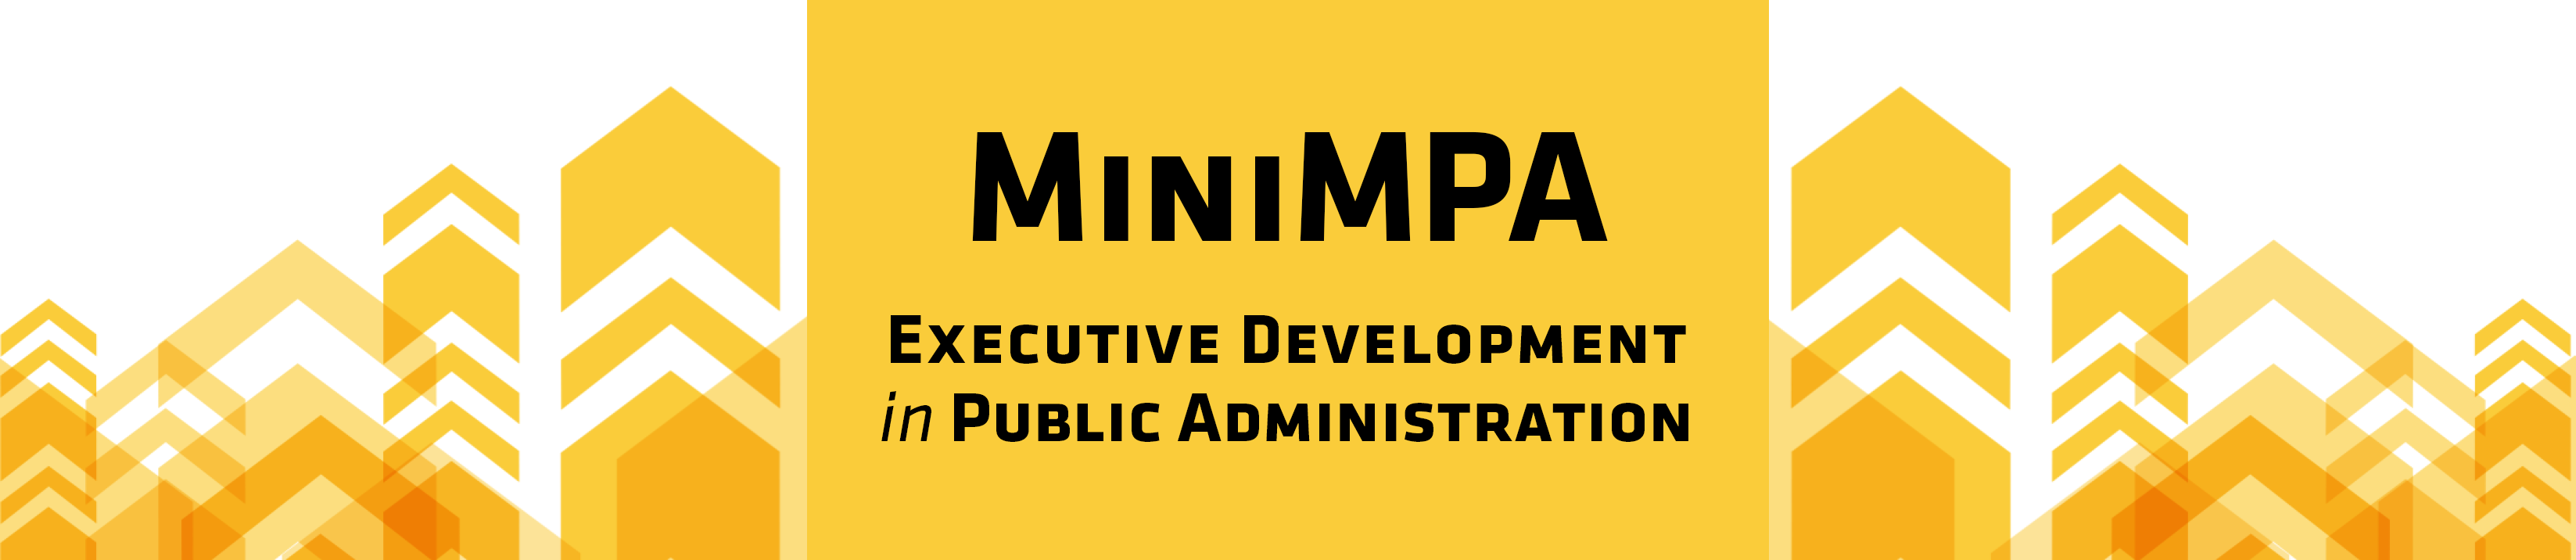 MiniMPA Executive Development in Public Administration